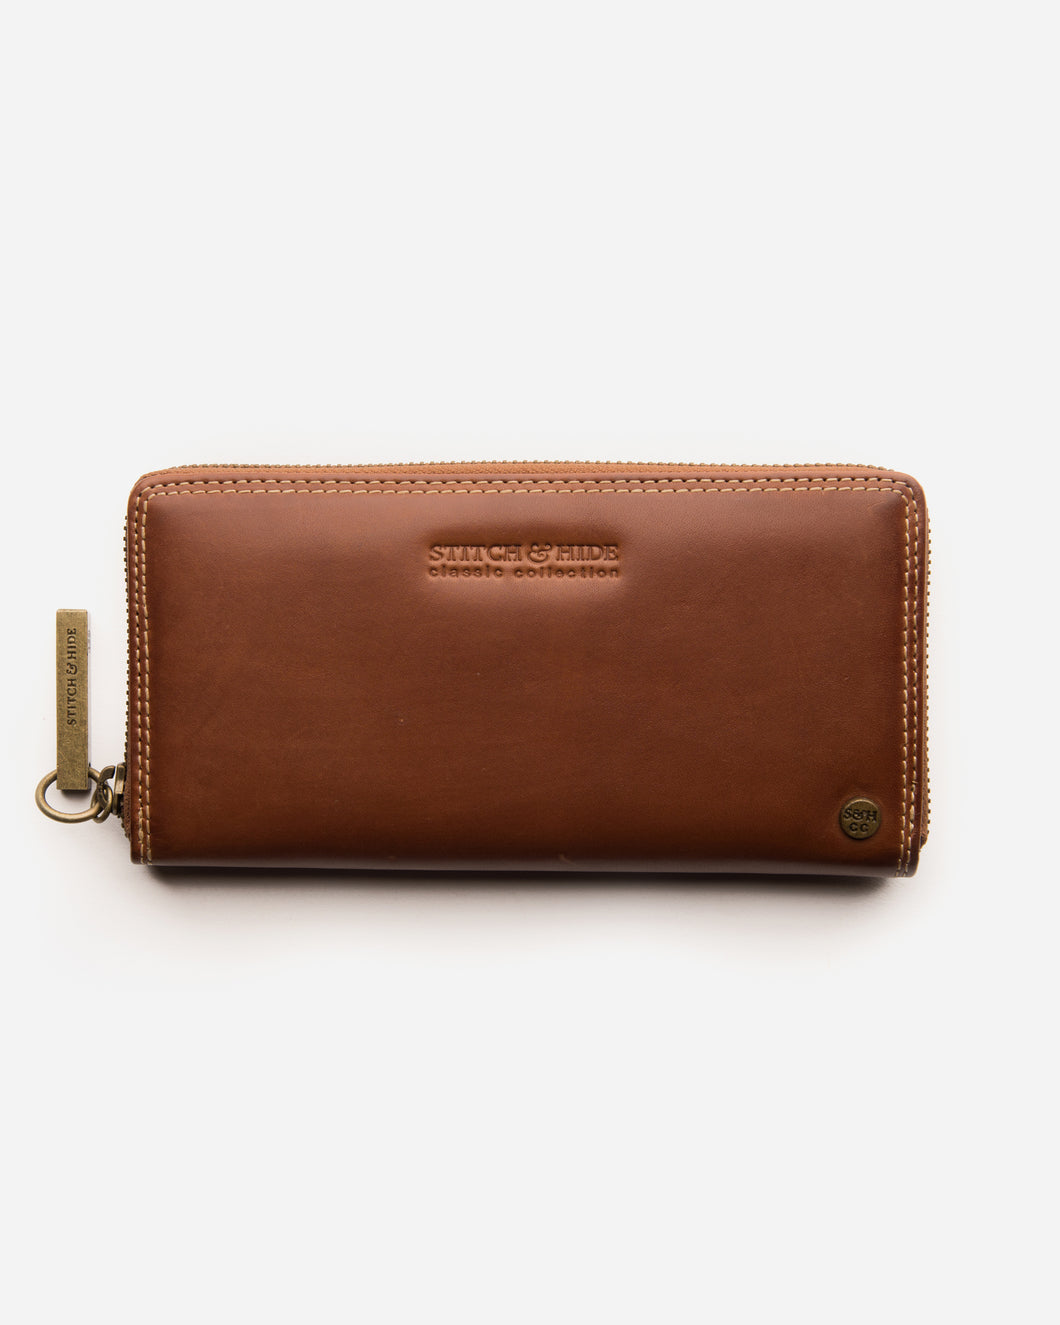 STITCH & HIDE - CHRISTINA CLASSIC WALLET MAPLE